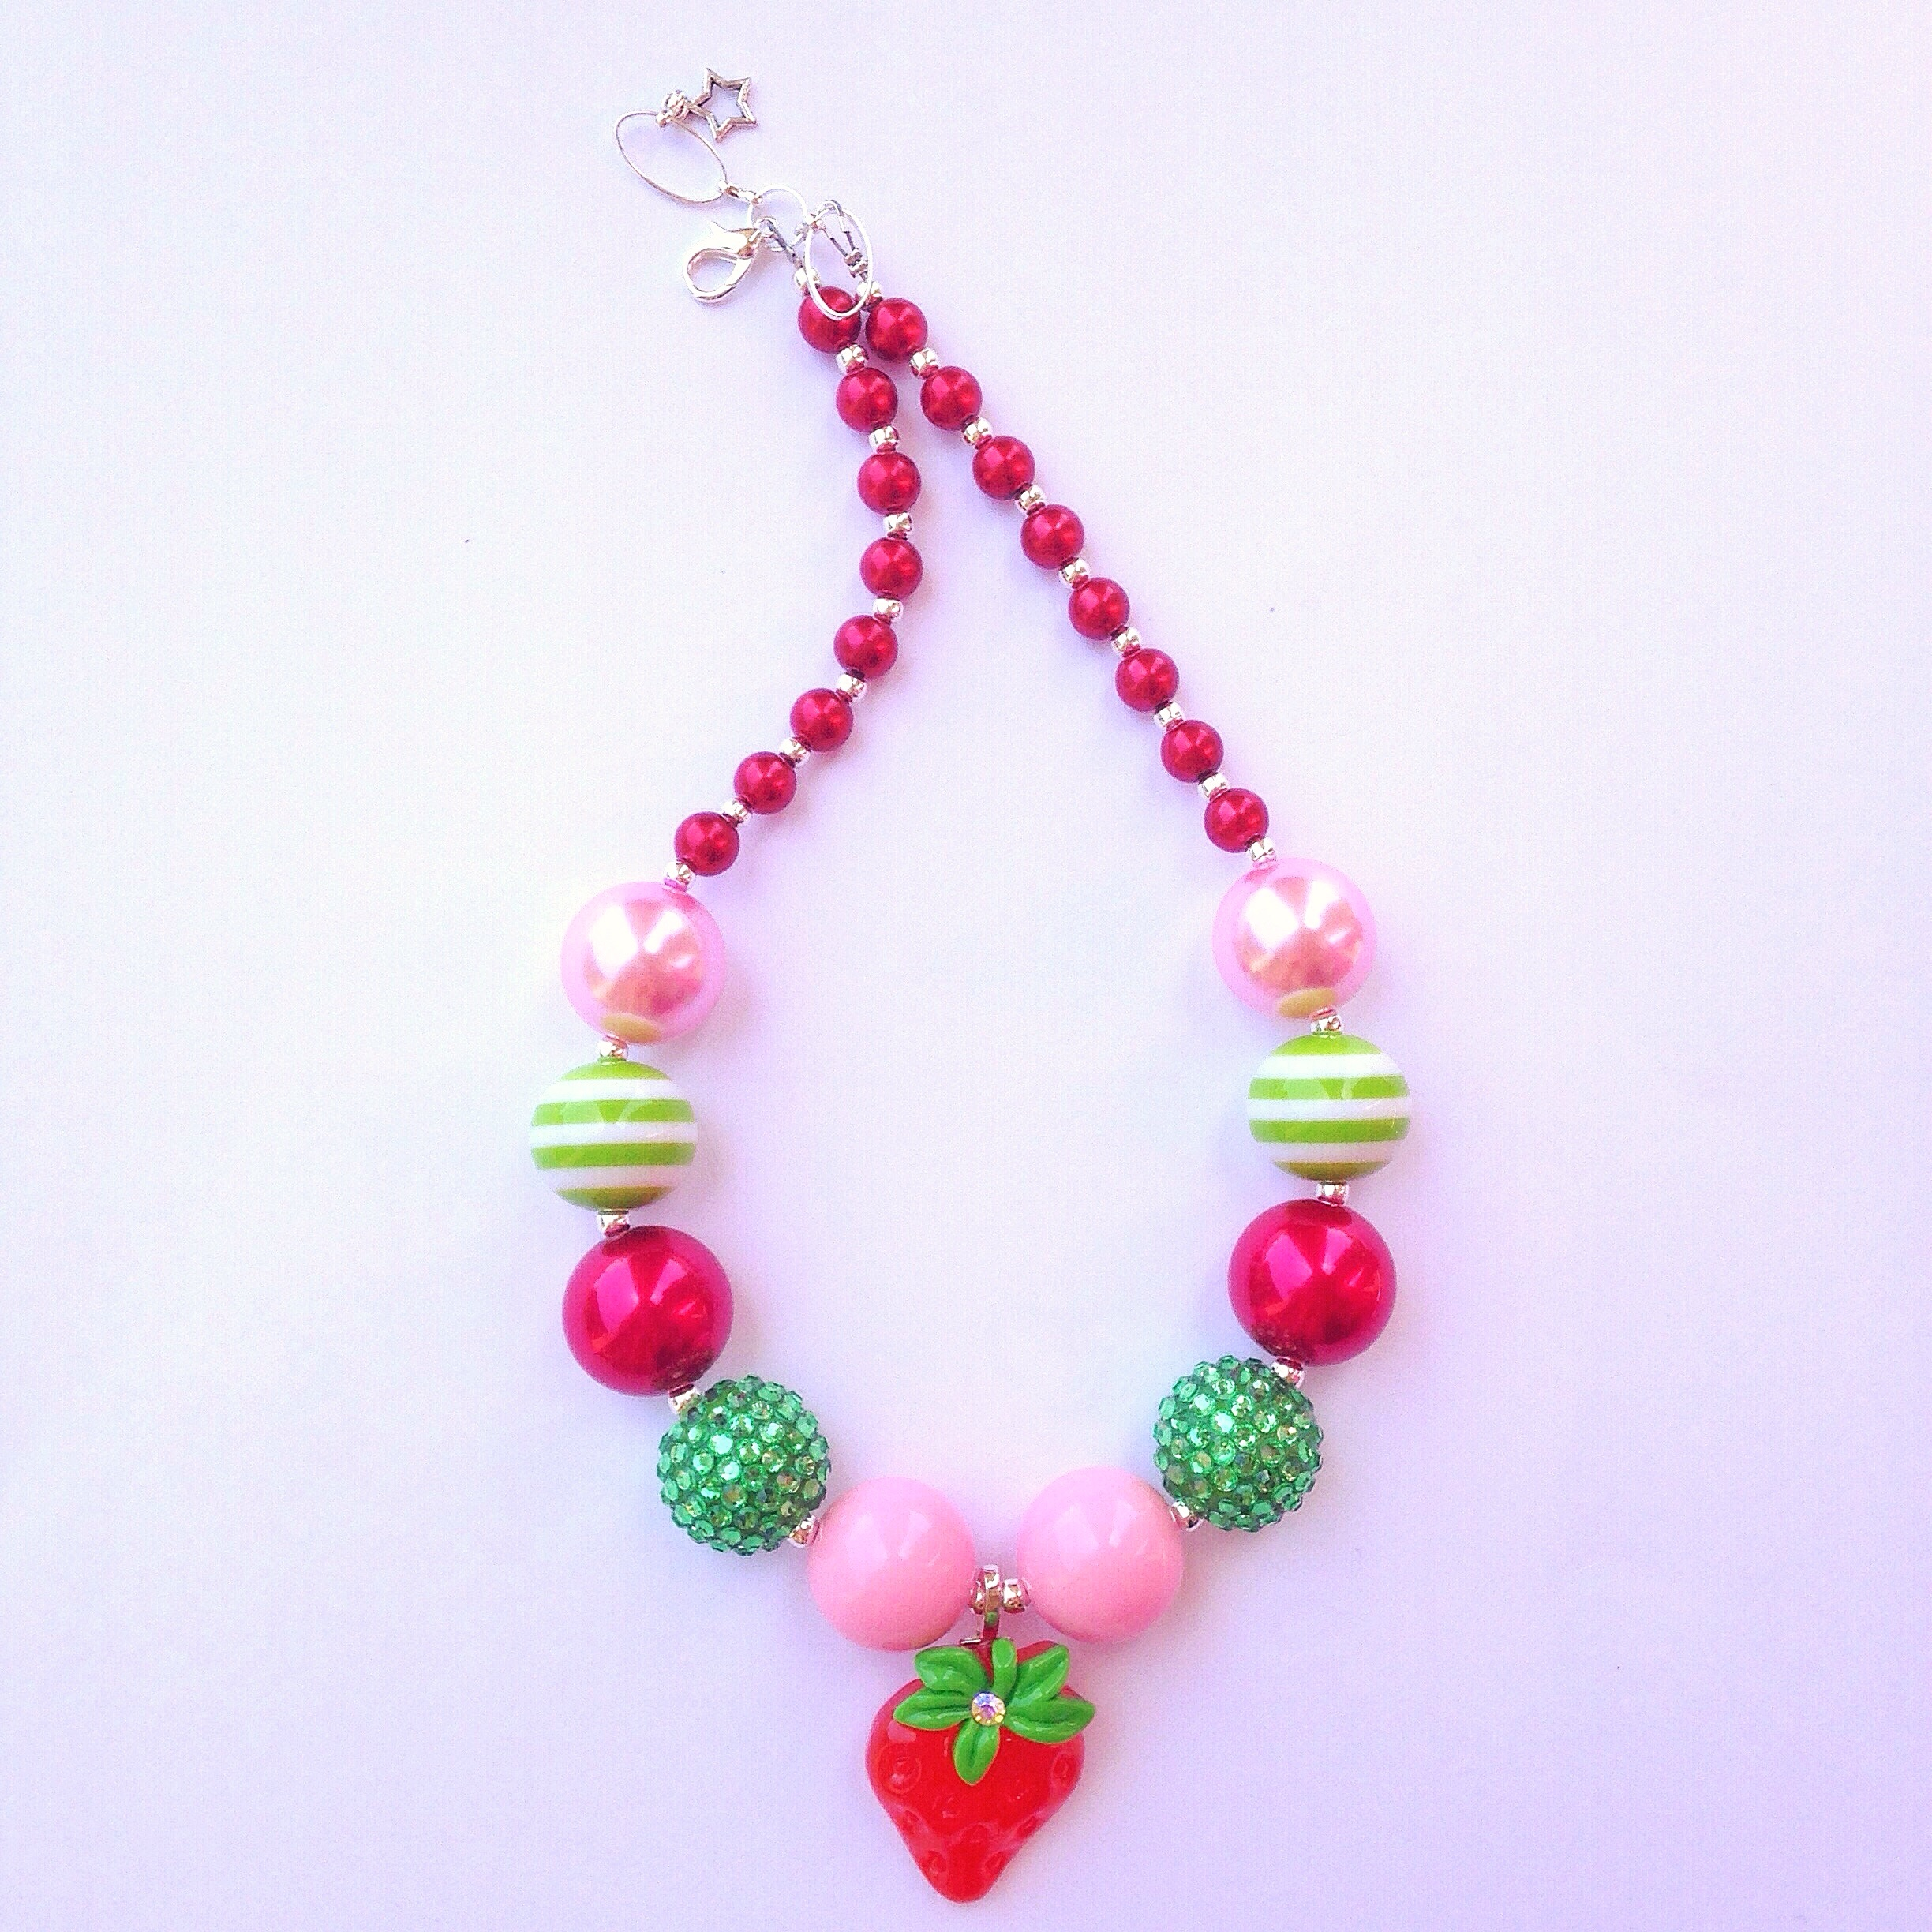 Strawberry shortcake necklace love blooms here online for Strawberry shortcake necklace jewelry